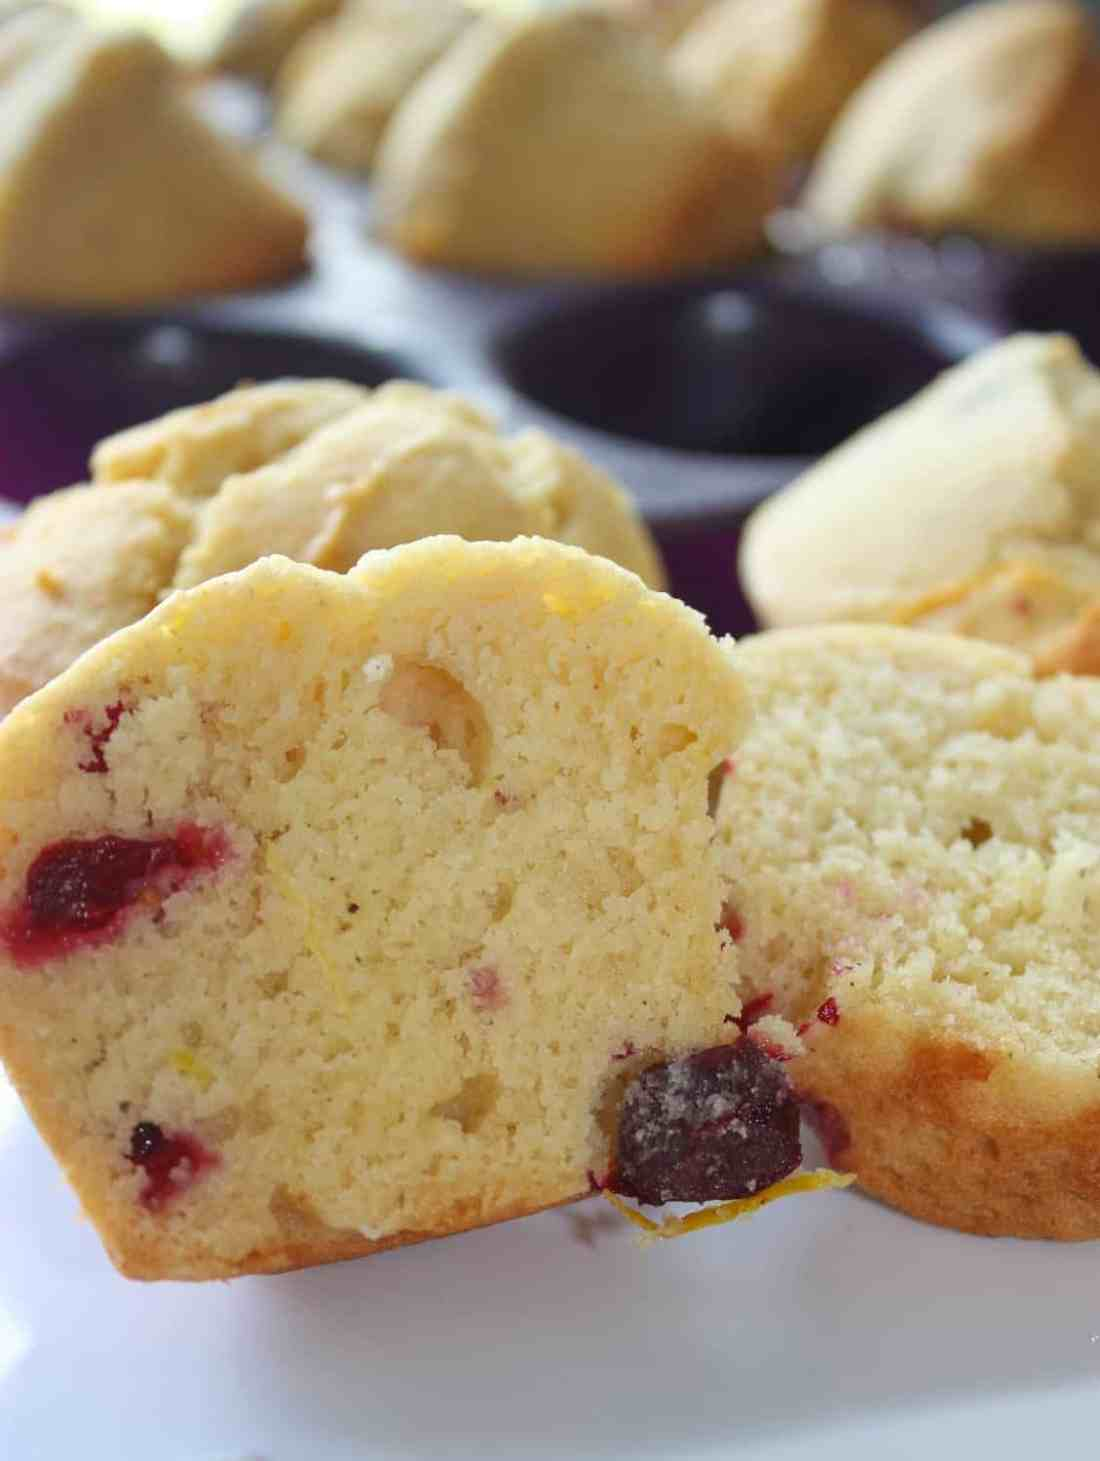 Lemon and cranberry are a winning combination and these muffins do not disappoint!  Eat them warm right out of the oven or save them for later.  These lemon cranberry muffins are a great snack any time.